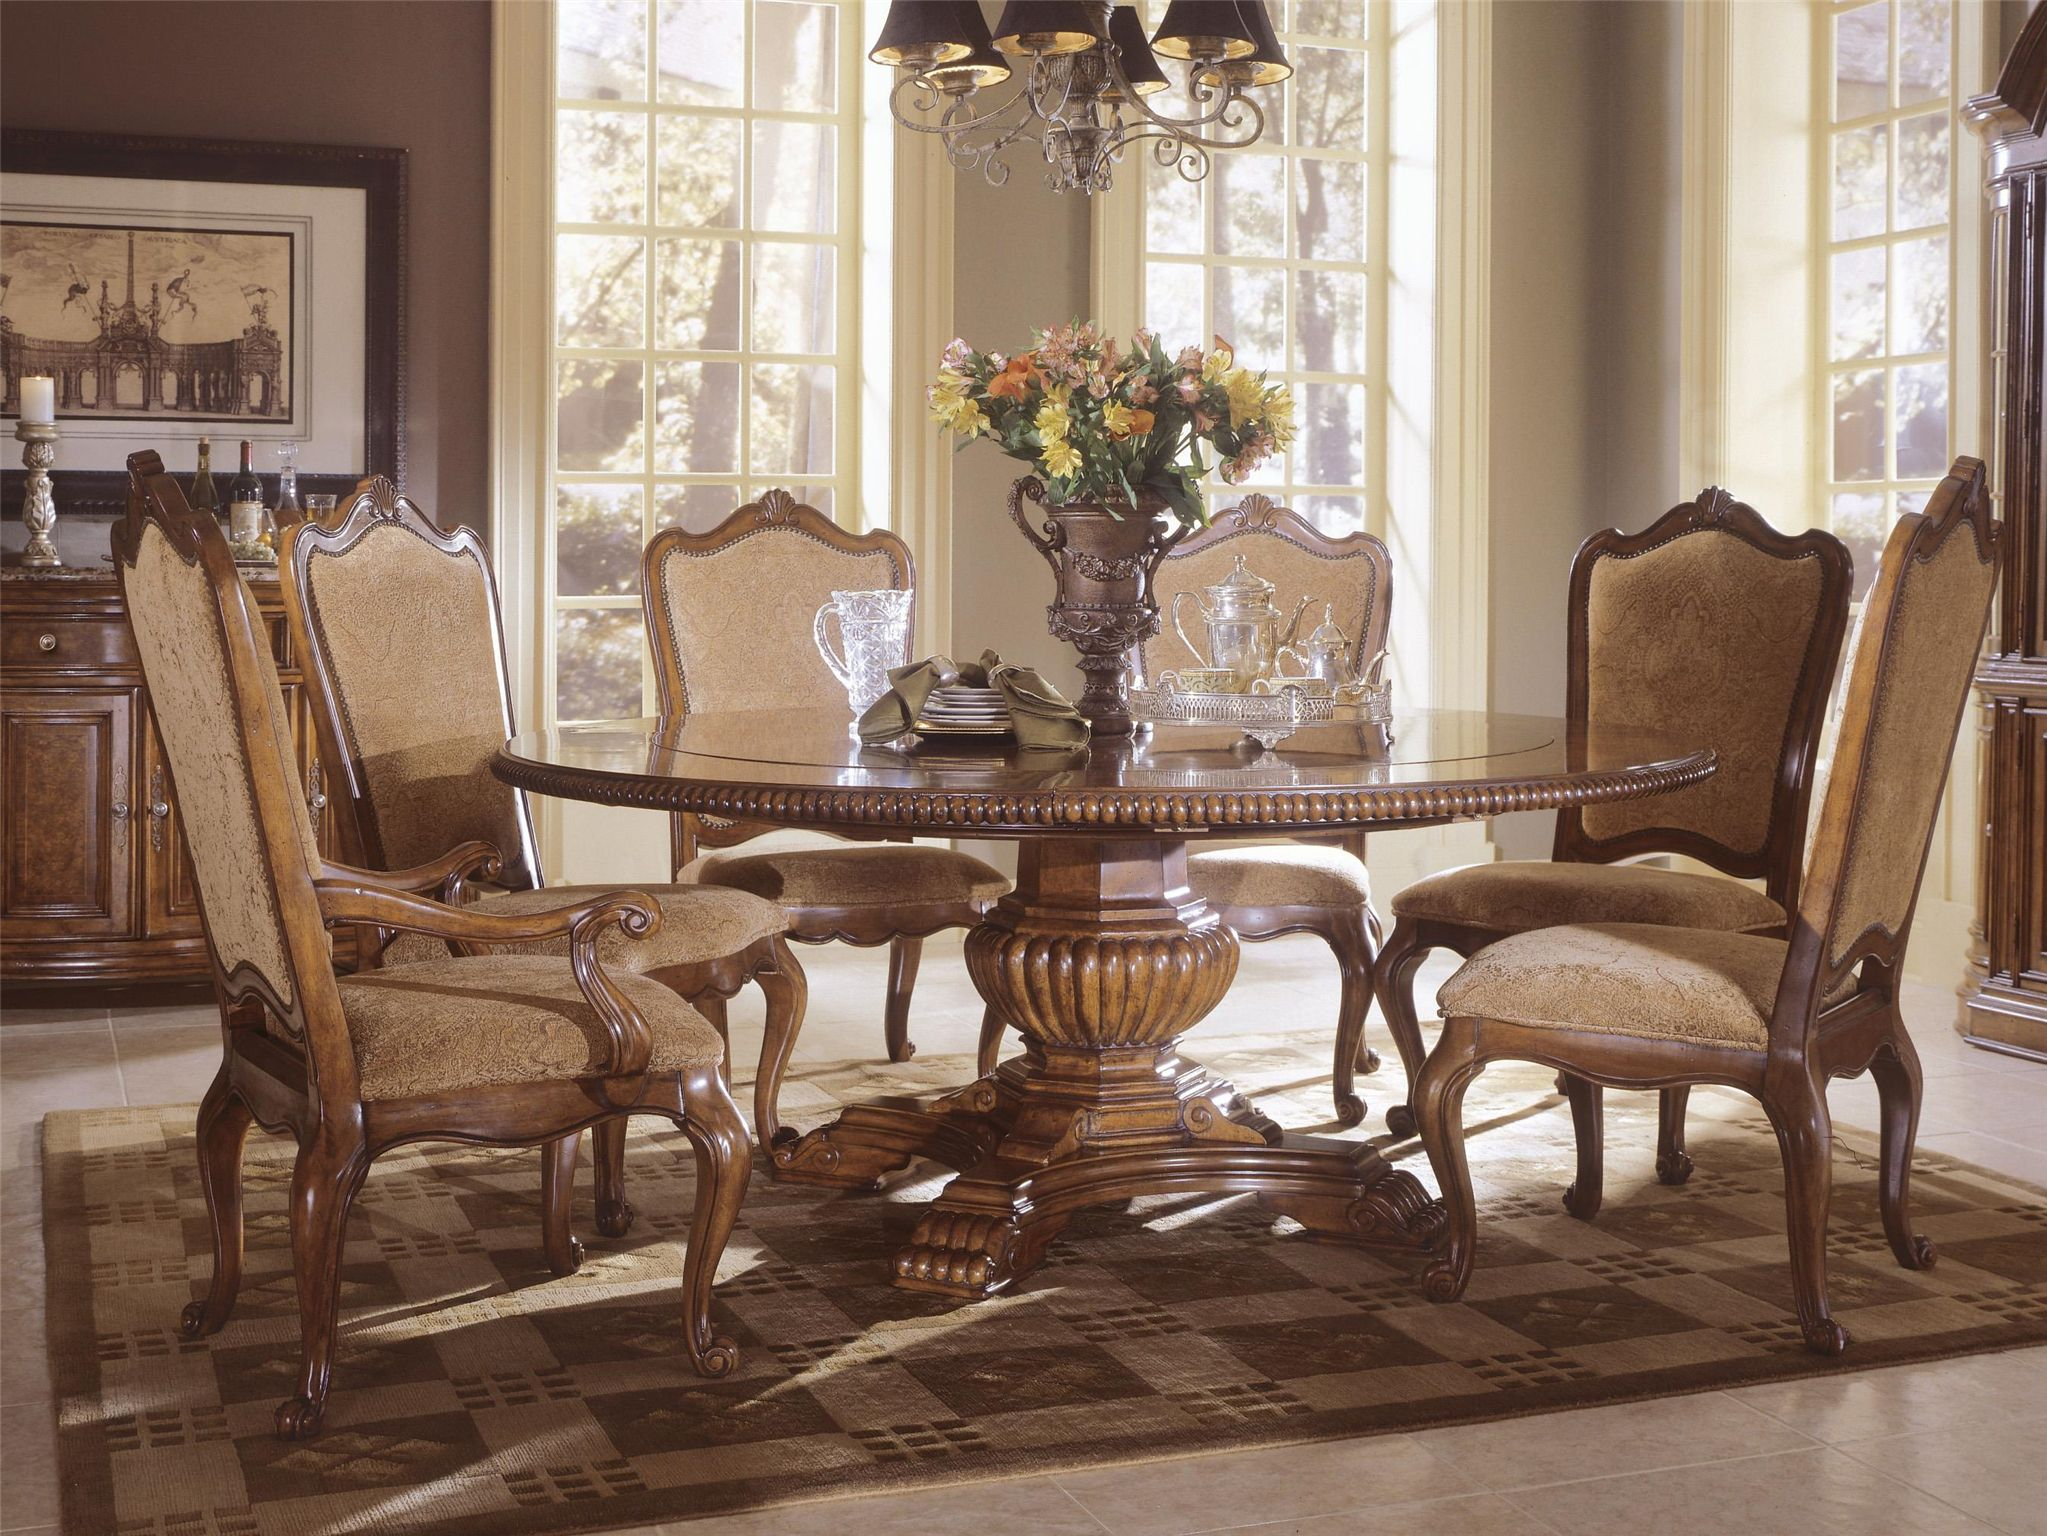 Universal Furniture Villa Cortina Round Table Features Four